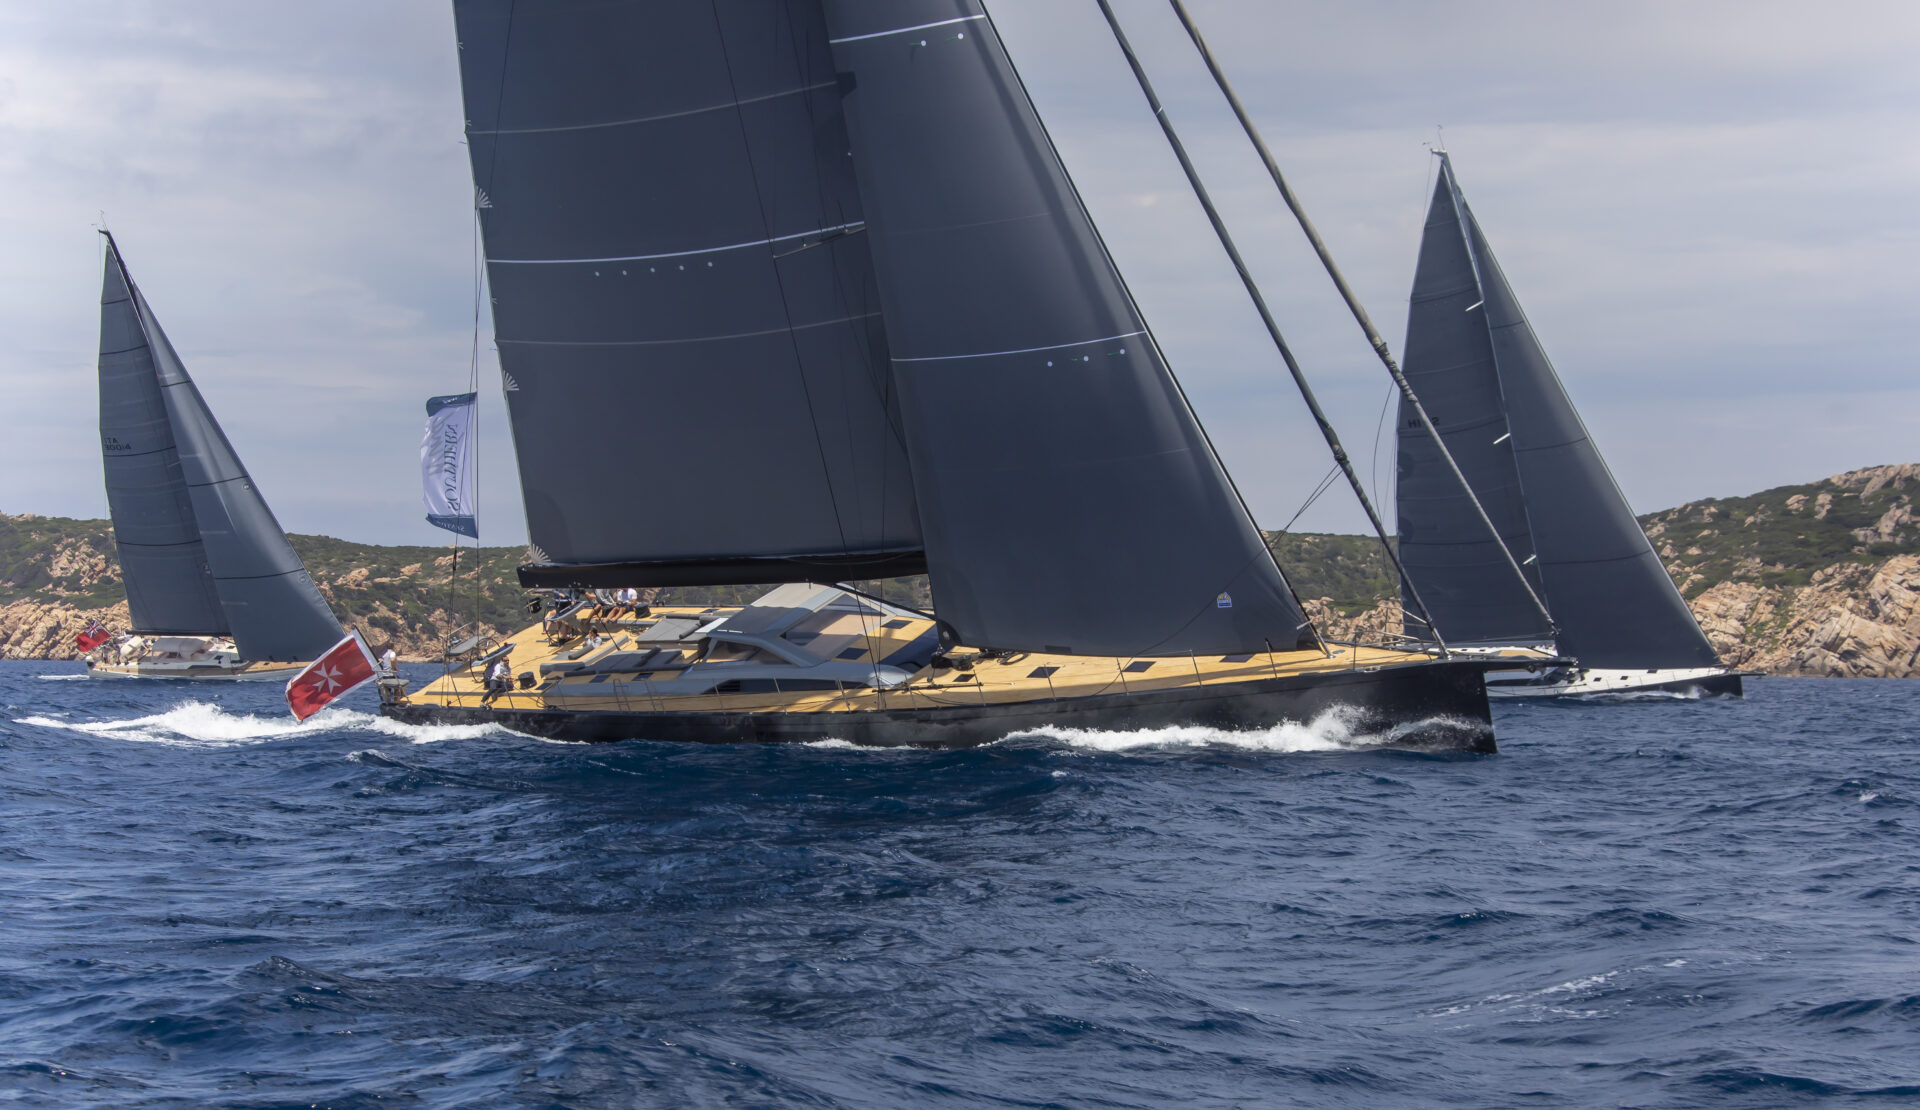 Southern Wind Sailing Yachts Racing in the 2021 SW Rendezvous & Trophy